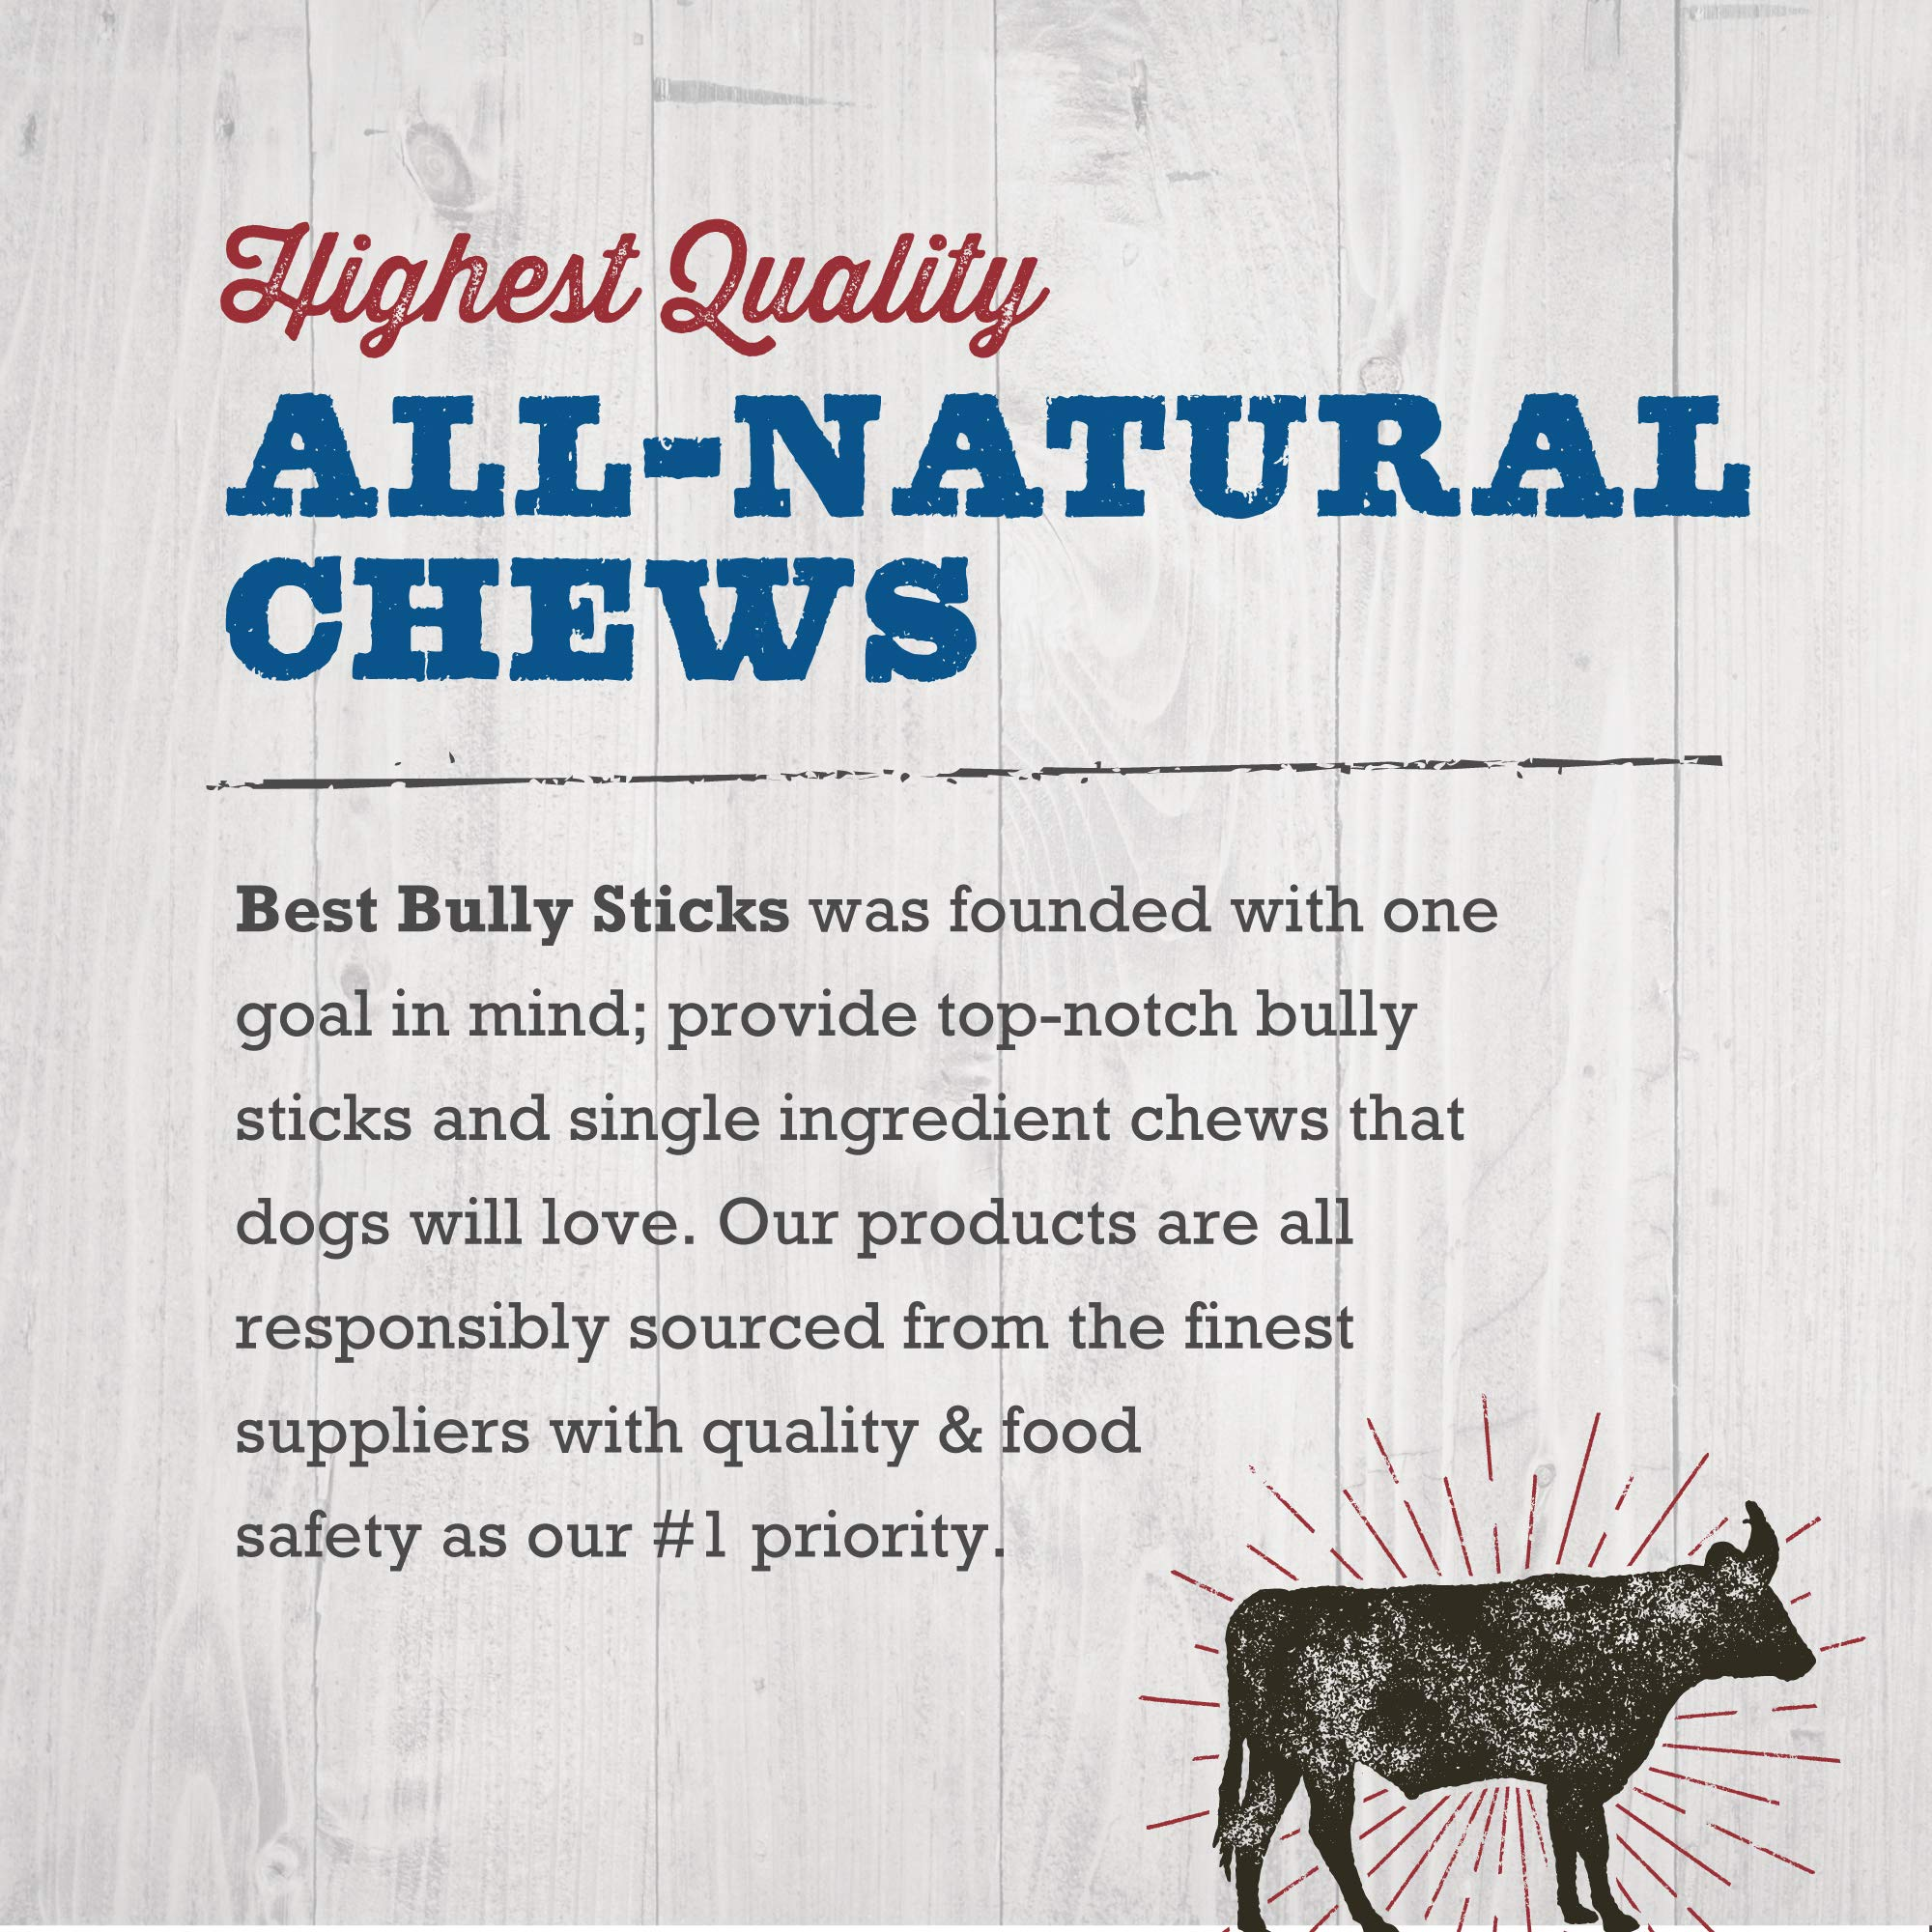 Best Bully Sticks 12-inch Jumbo Bully Sticks (25 Pack) 12-Inch Premium Jumbo Bully Sticks - All-Natural Beef Dog Chews for Aggressive Chewers by Best Bully Sticks (Image #7)